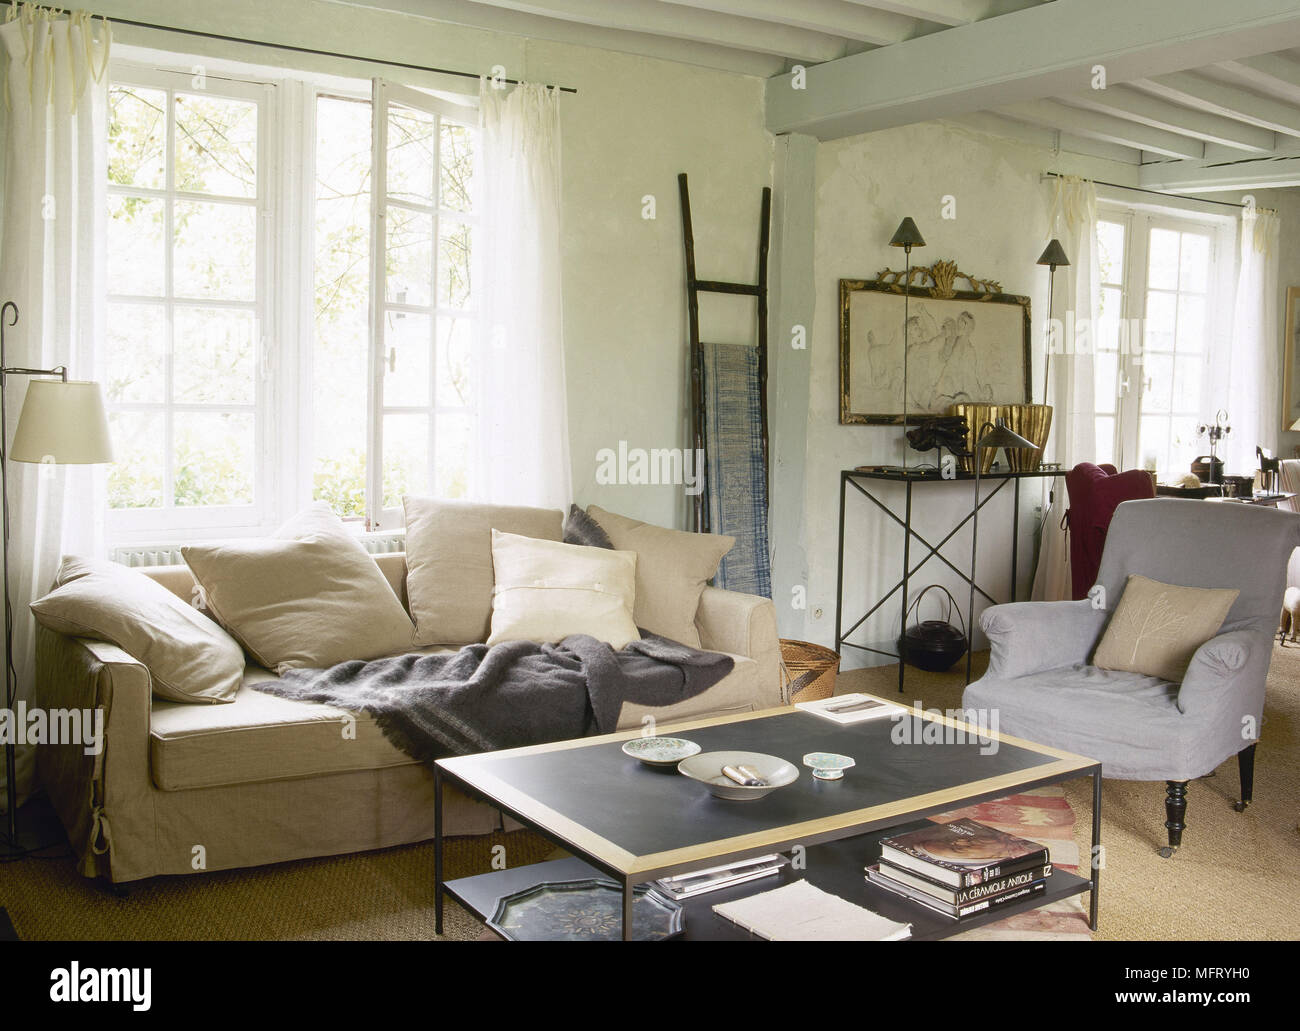 Country Sitting Room Beamed Ceiling Neutral Sofa Modern Coffee Table  Interiors Rooms Natural Materials Colours Period Furniture Features